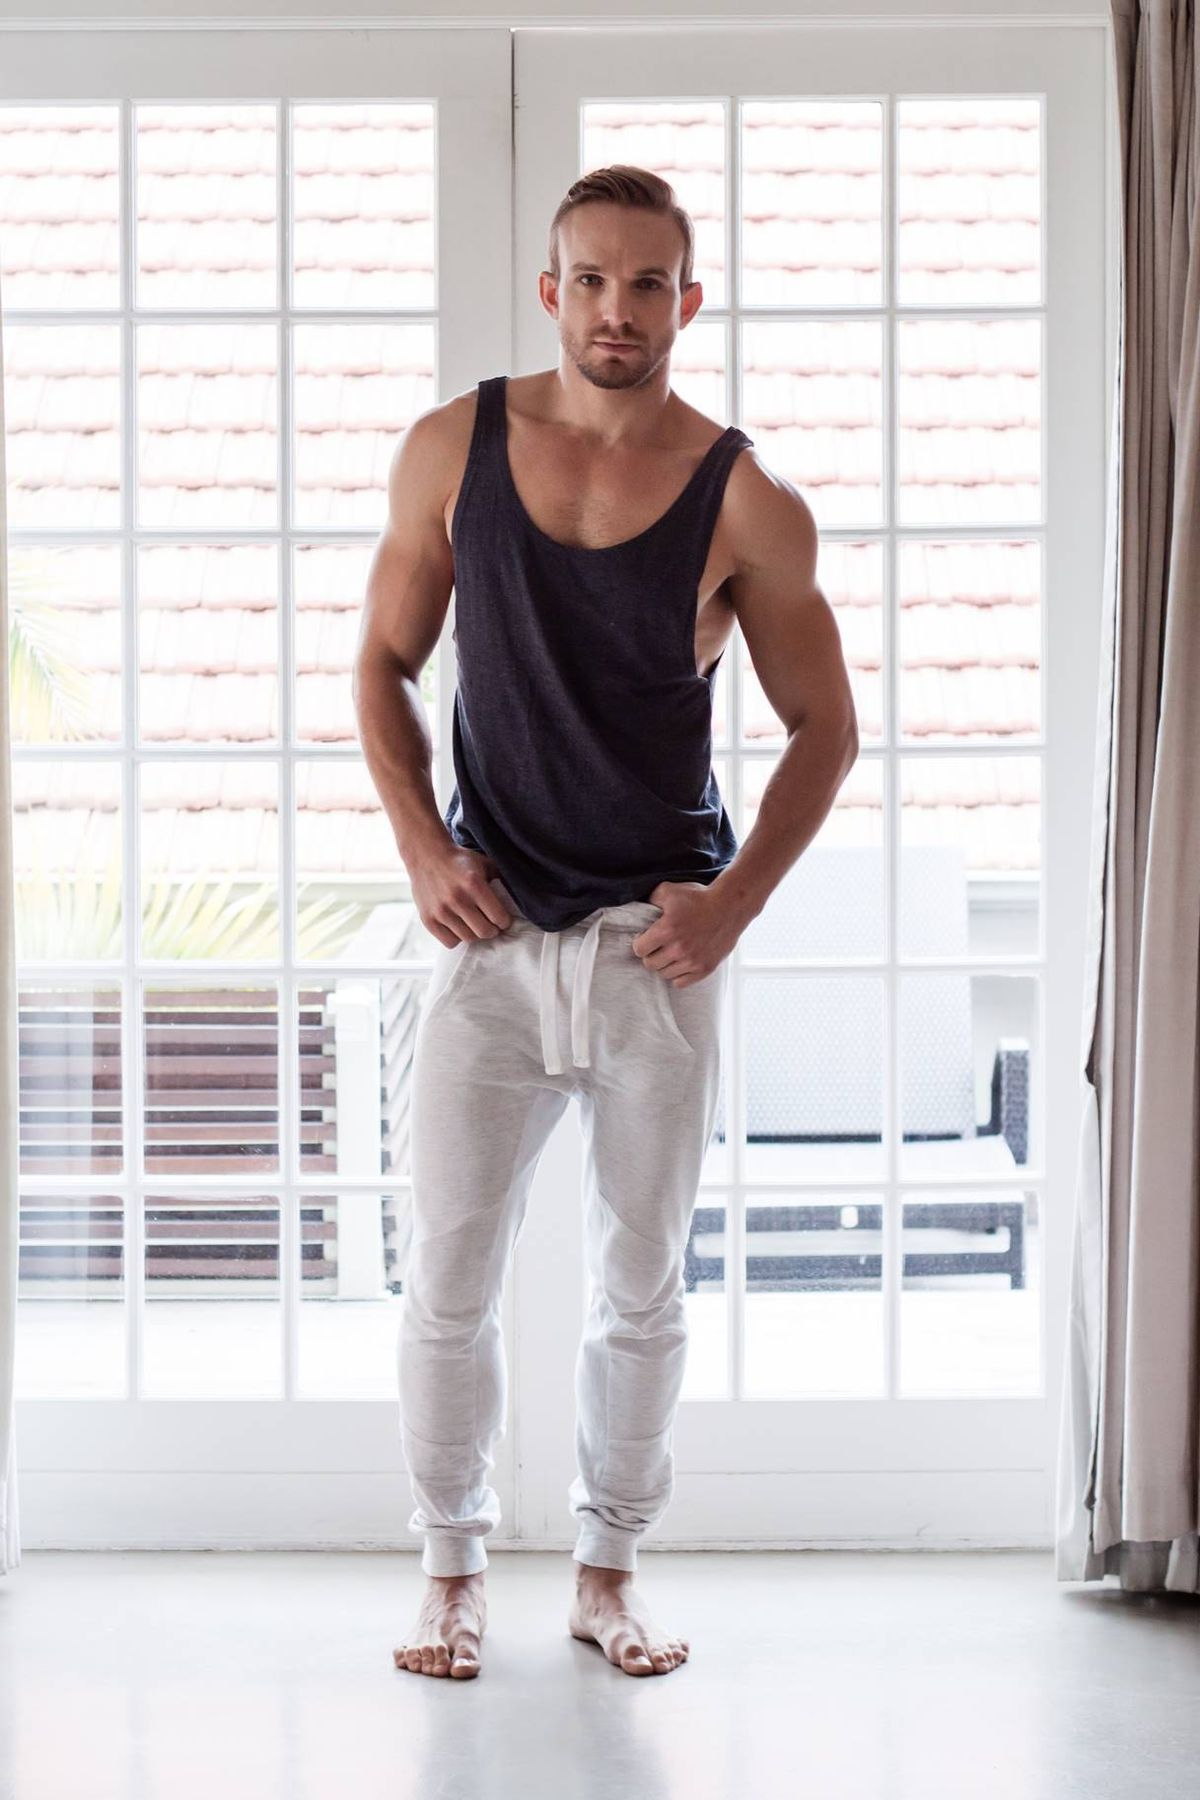 35f39f0e173f0 20 Sexy And Comfy Men Workout Outfits - Styleoholic. #johnnystaycool Gym  Wear, Workout Clothes For Men, Mens Fashion Wear, Fashion Fashion